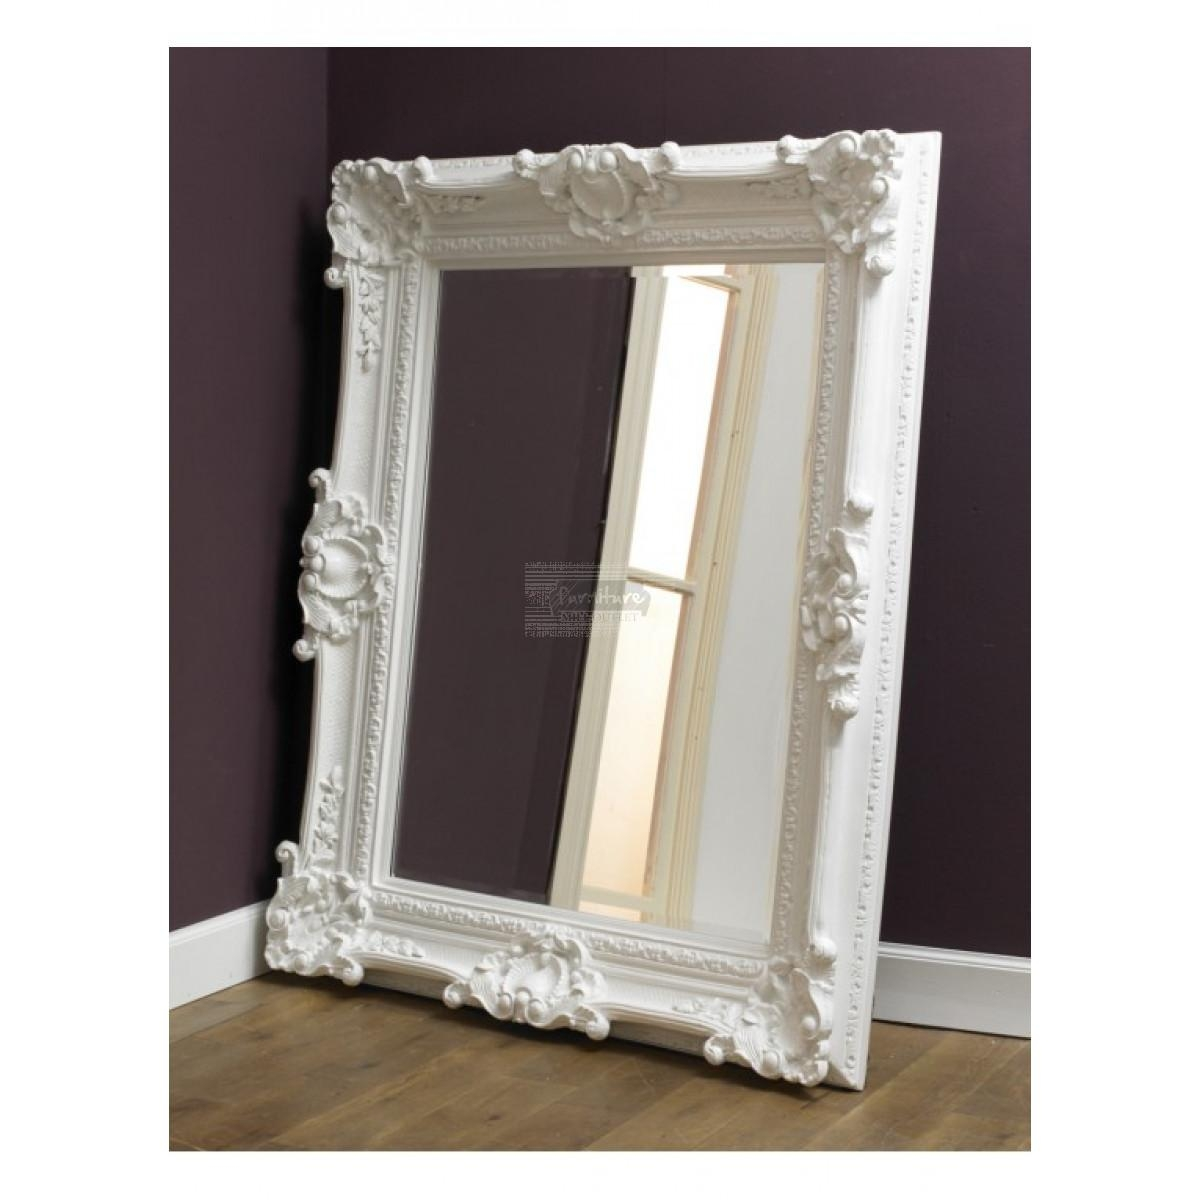 Rococo White Mirror Furniture Mill Outlet Inside White Rococo Mirror (Image 18 of 20)